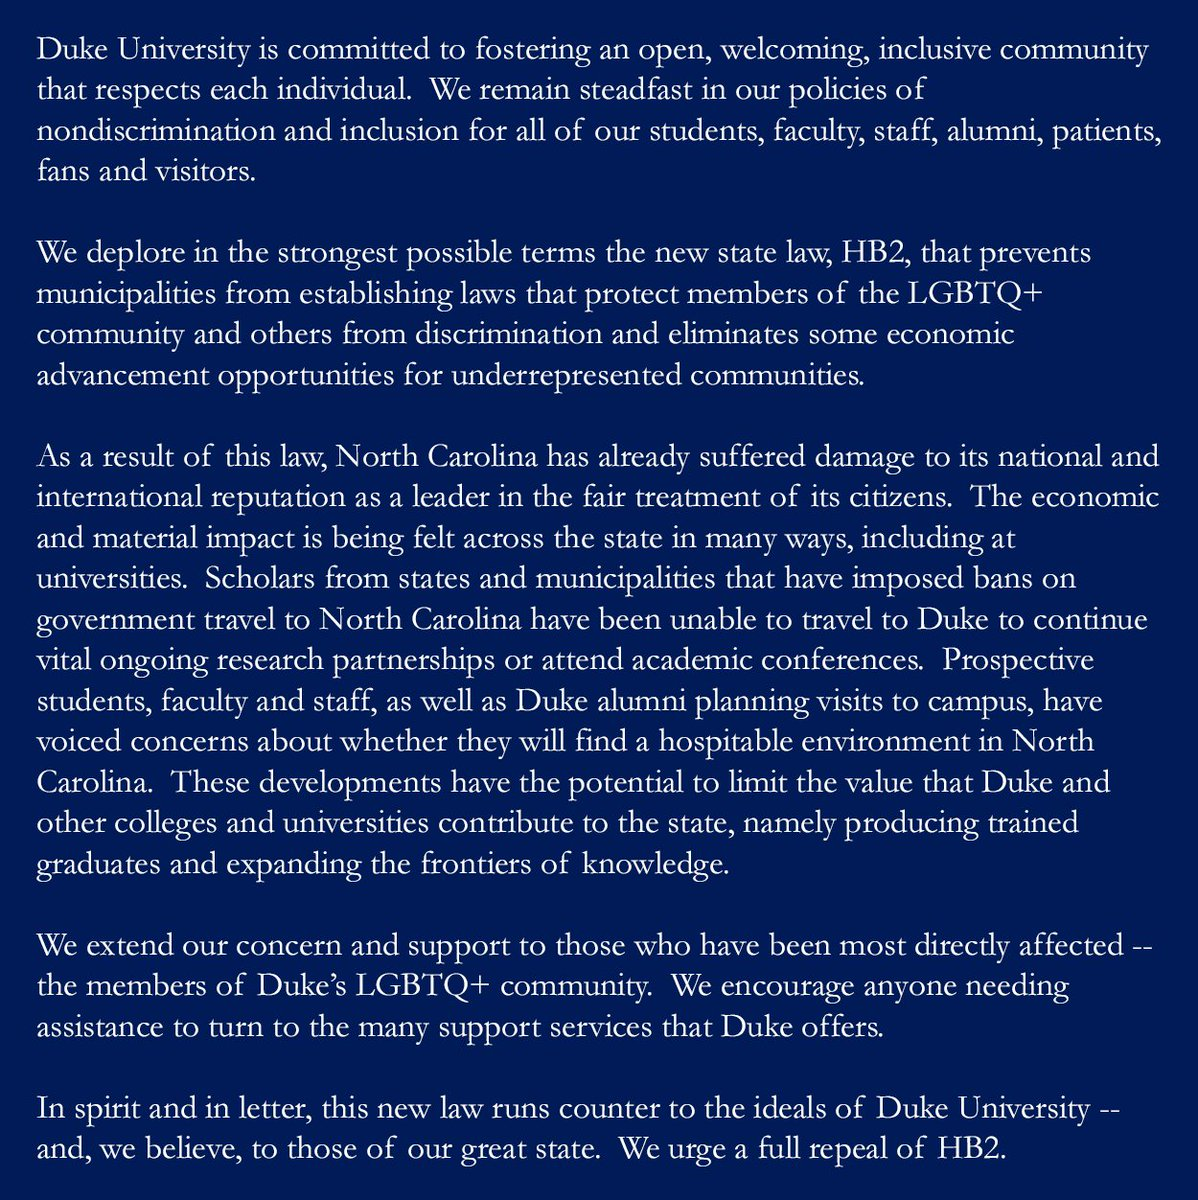 an essay on my decision for readmission into duke university What should you avoid when writing a supplemental essay for college admission duke university's trinity college offers applicants the opportunity to write a supplemental essay that answers the question: please discuss why you consider duke a good match for you.